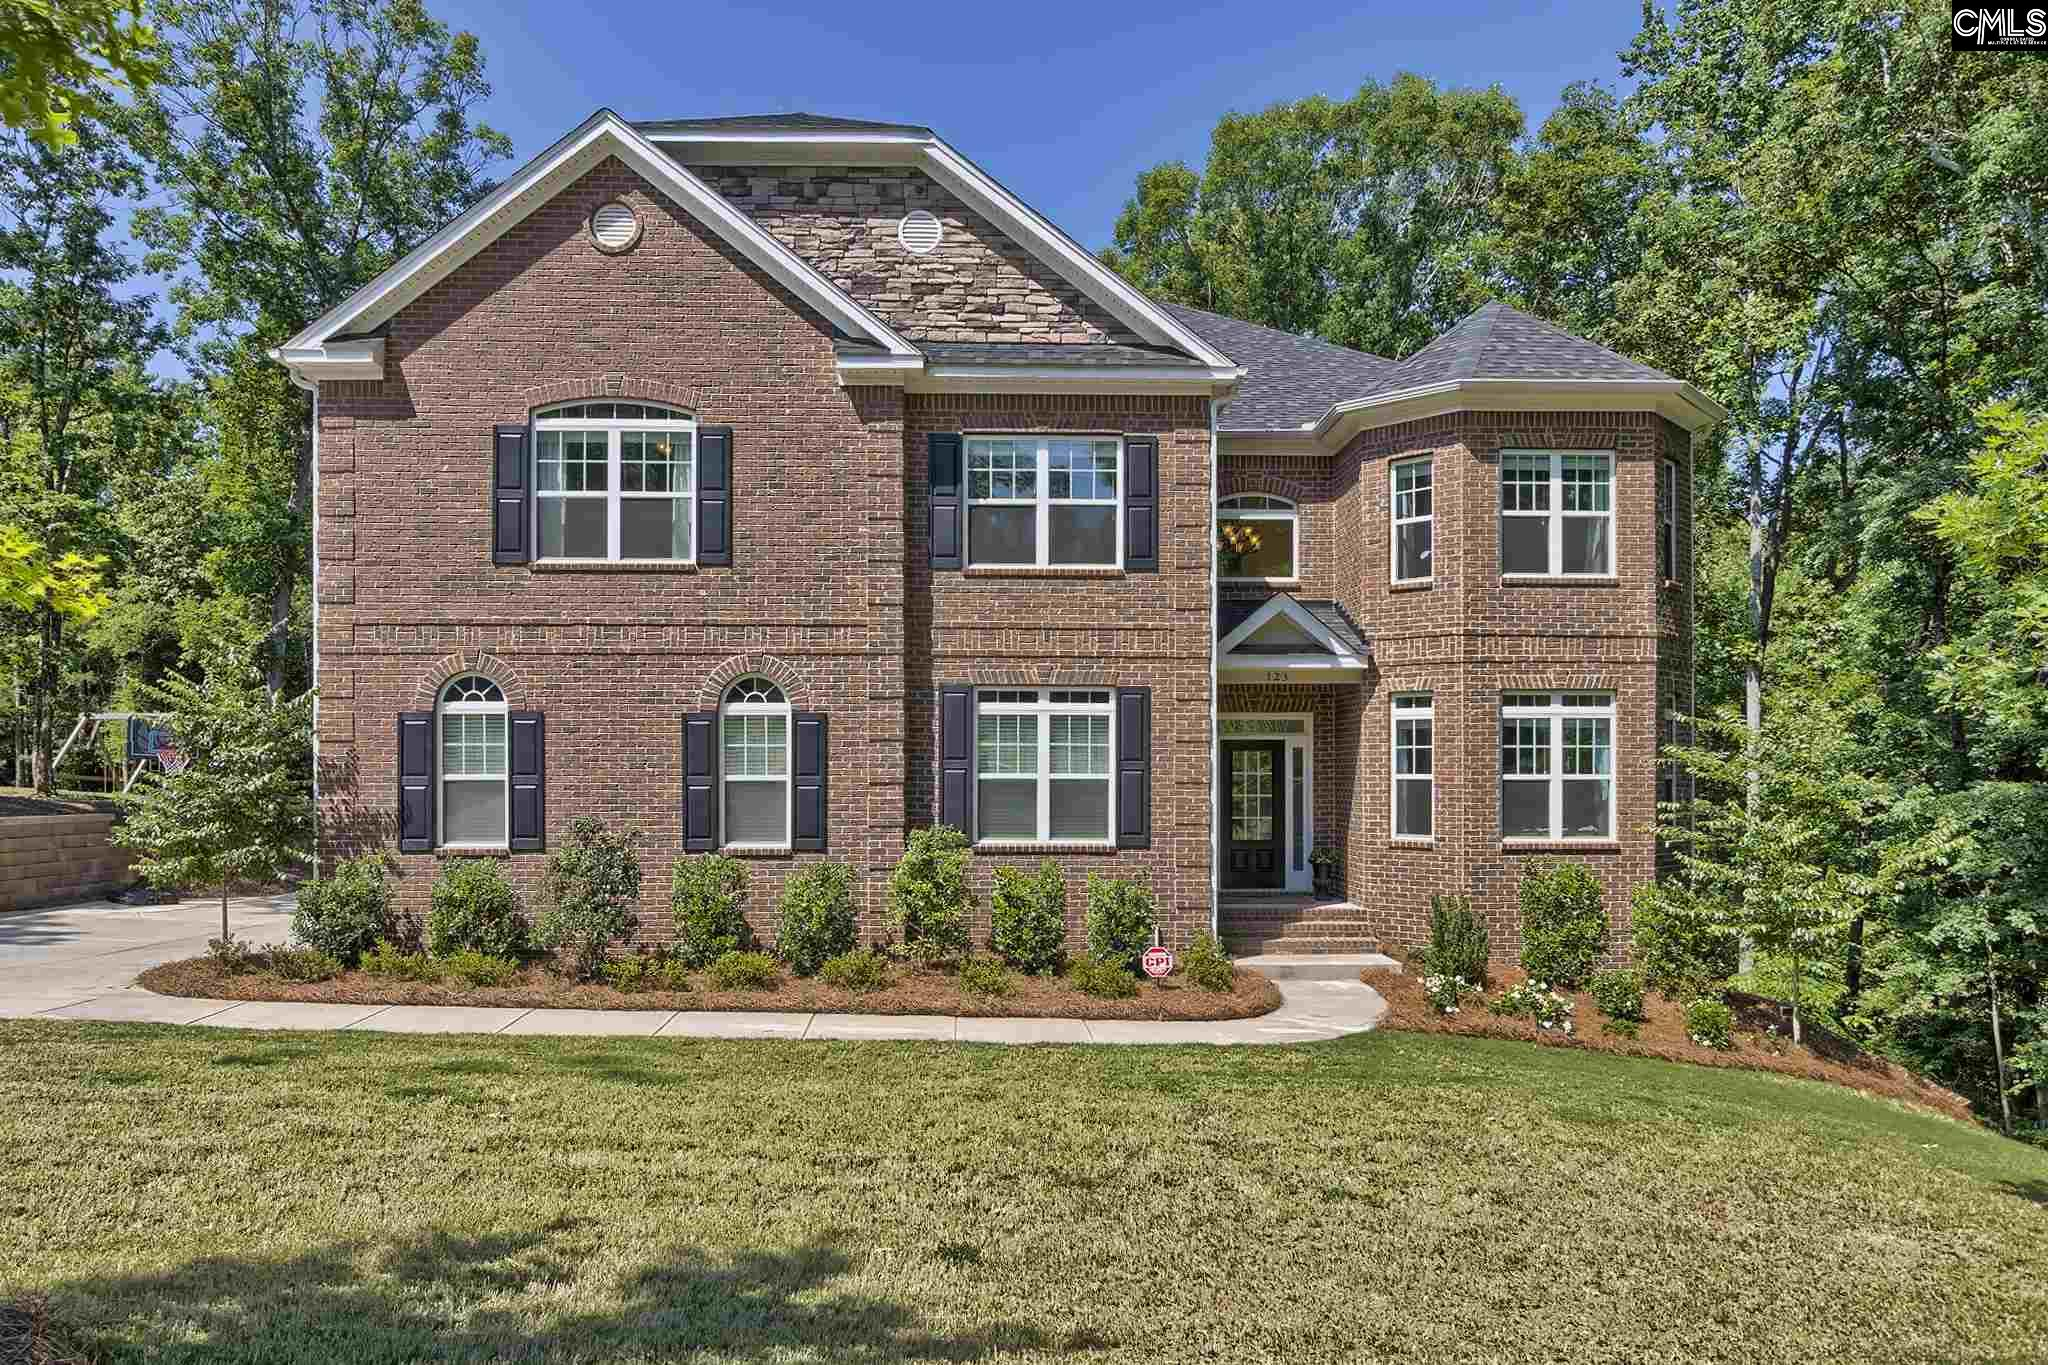 123 John Drayton Lexington, SC 29072